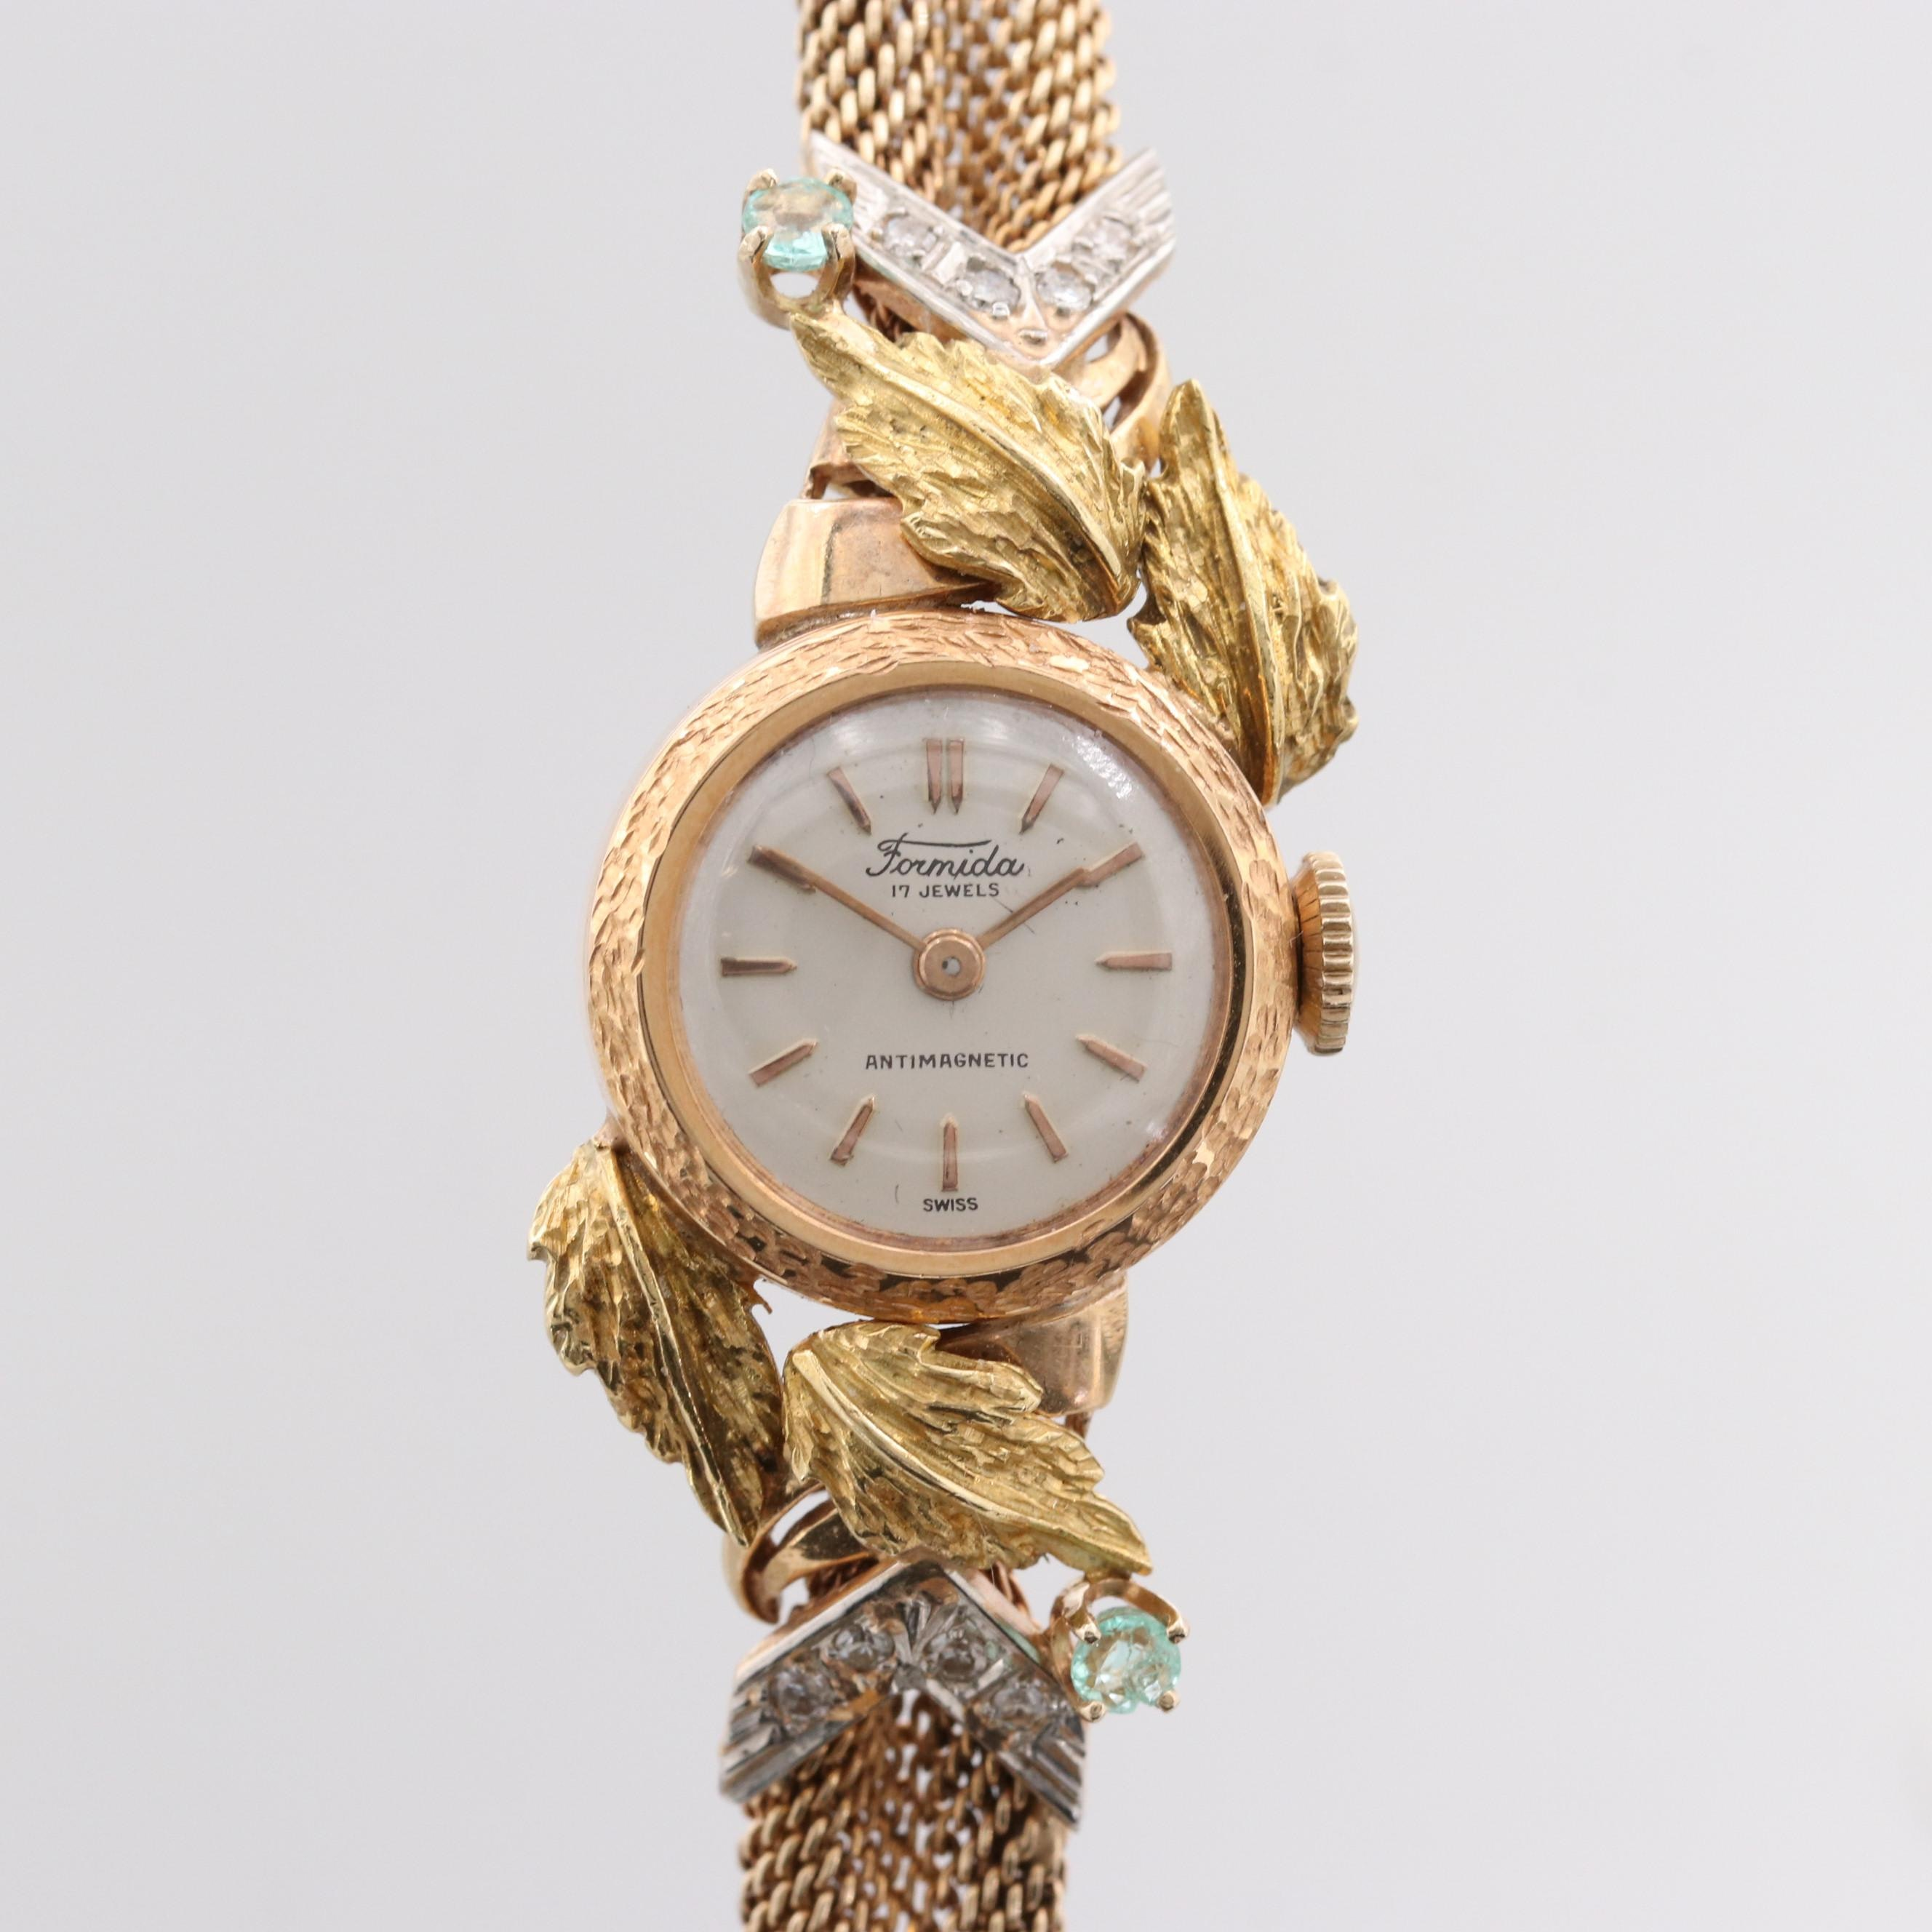 18K Tri Color Gold Swiss Wristwatch With Diamonds and Aquamarines